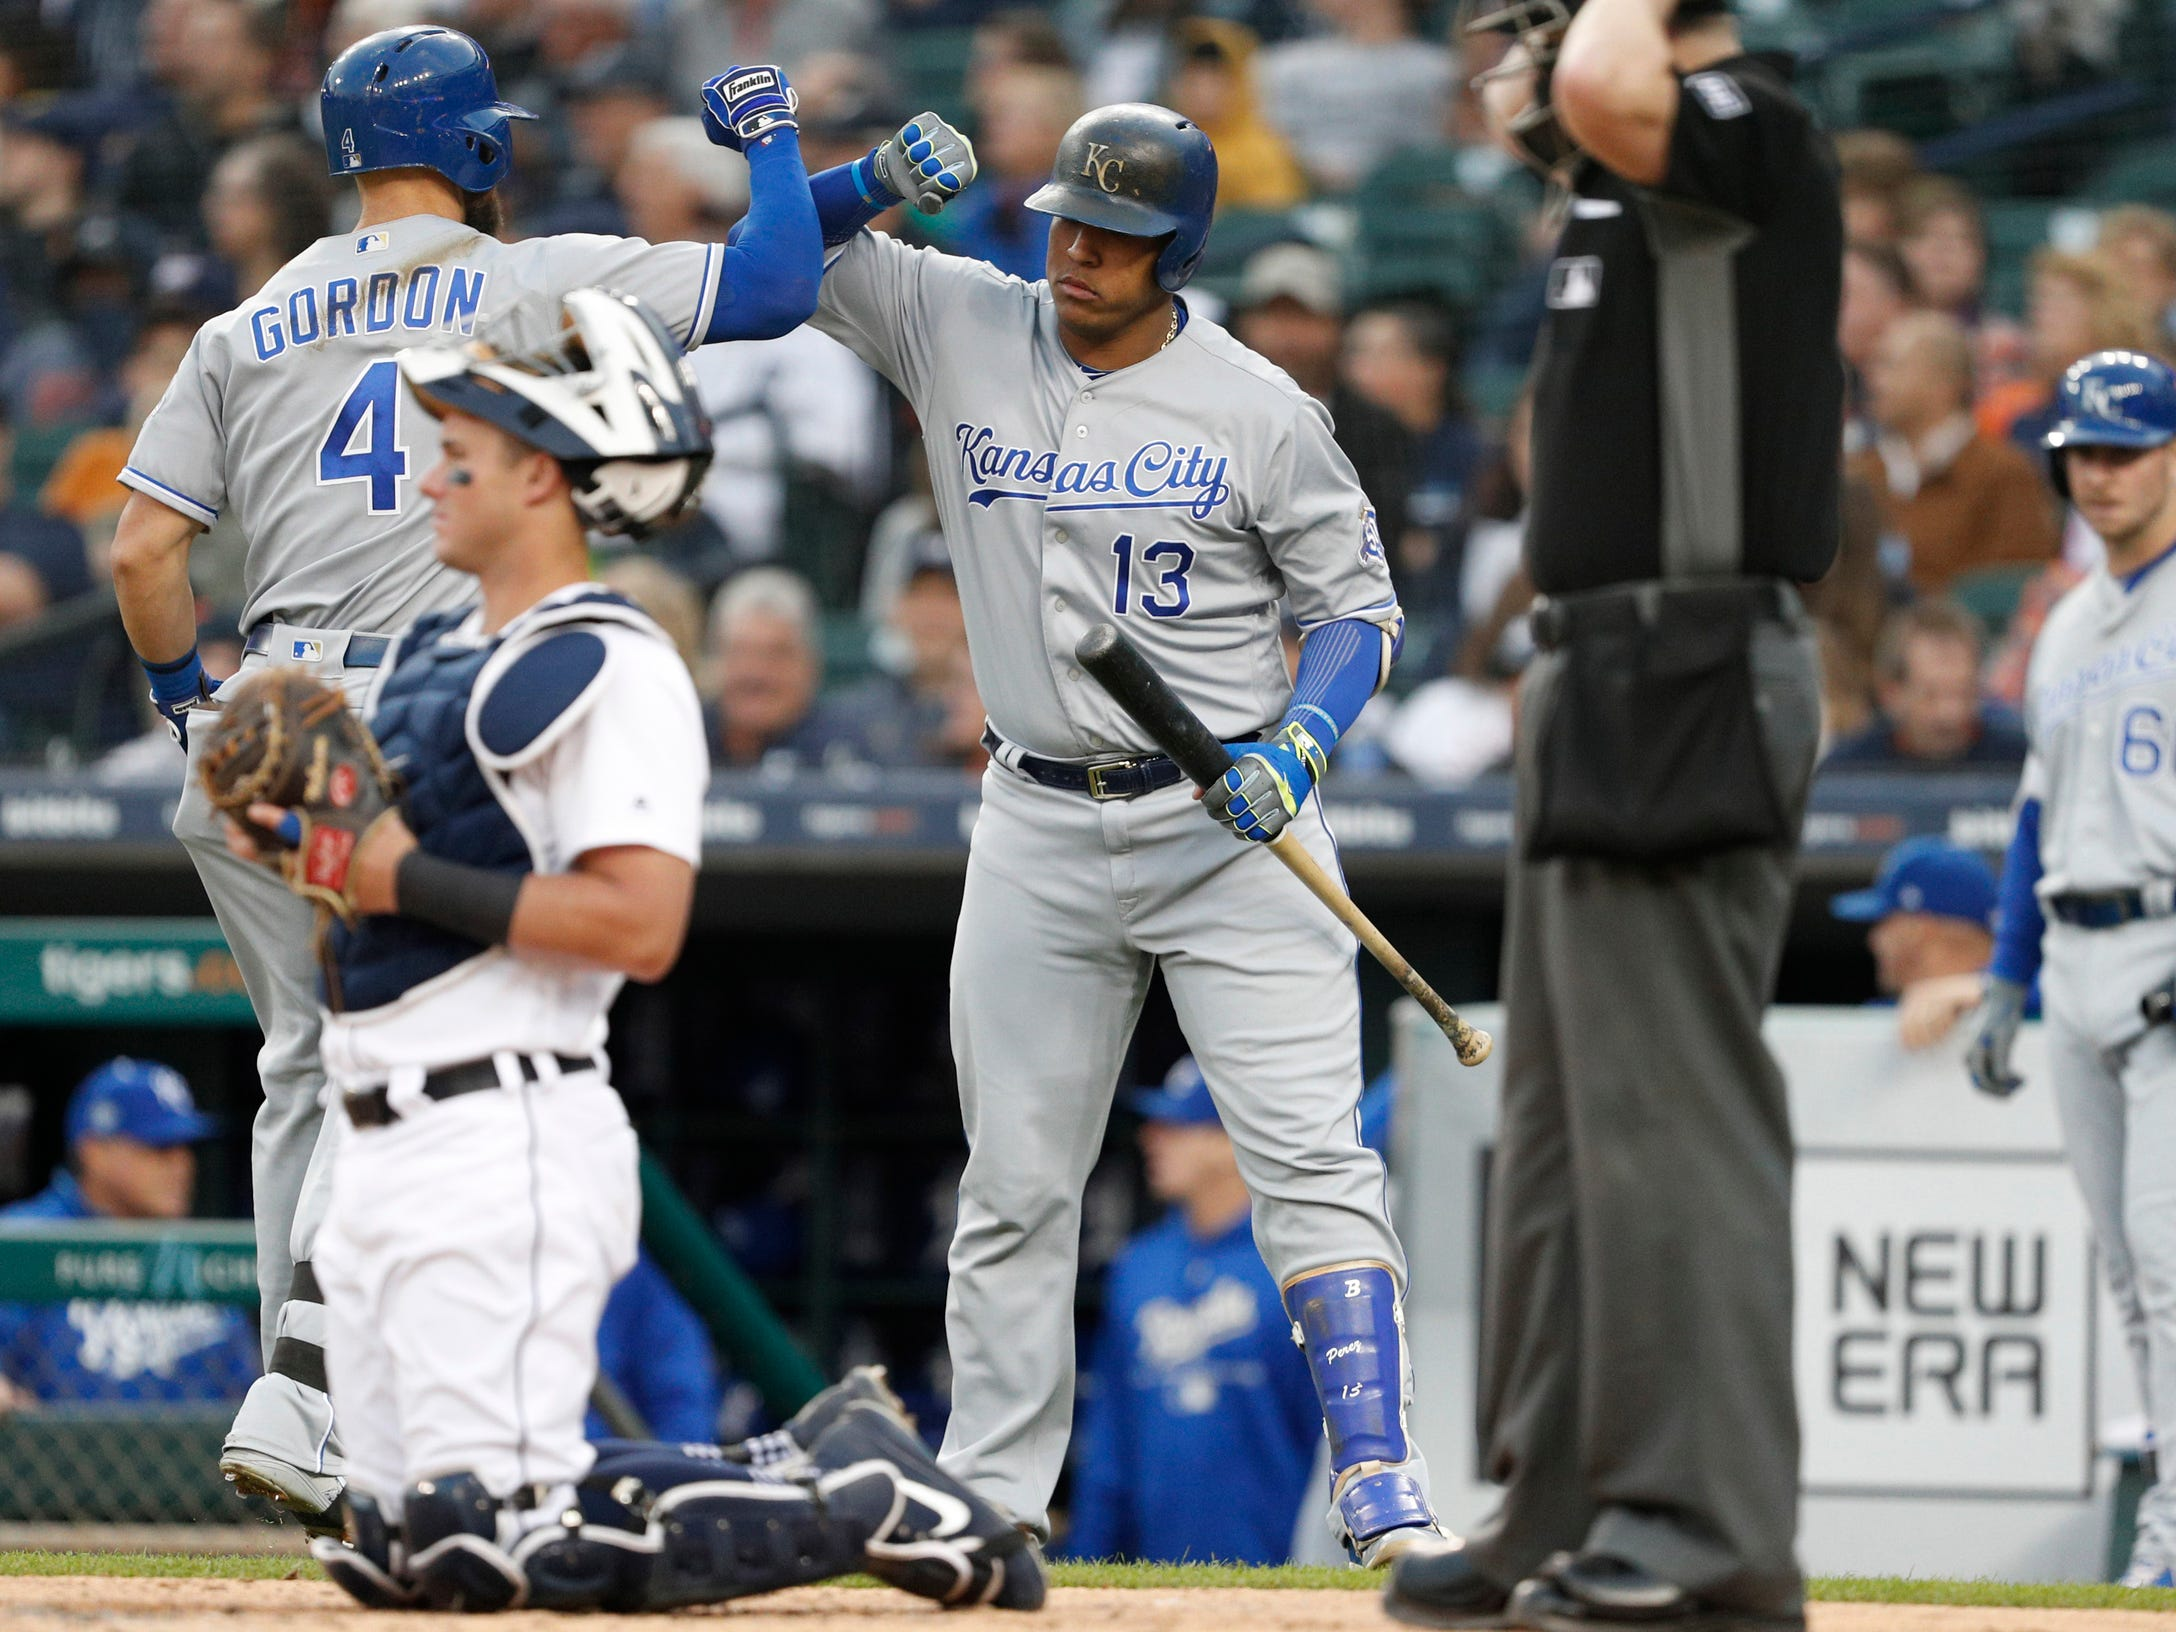 Kansas City Royals left fielder Alex Gordon celebrates with Salvador Perez (13) after hitting a solo home run during the fourth inning against the Detroit Tigers at Comerica Park on Sept. 22, 2018.